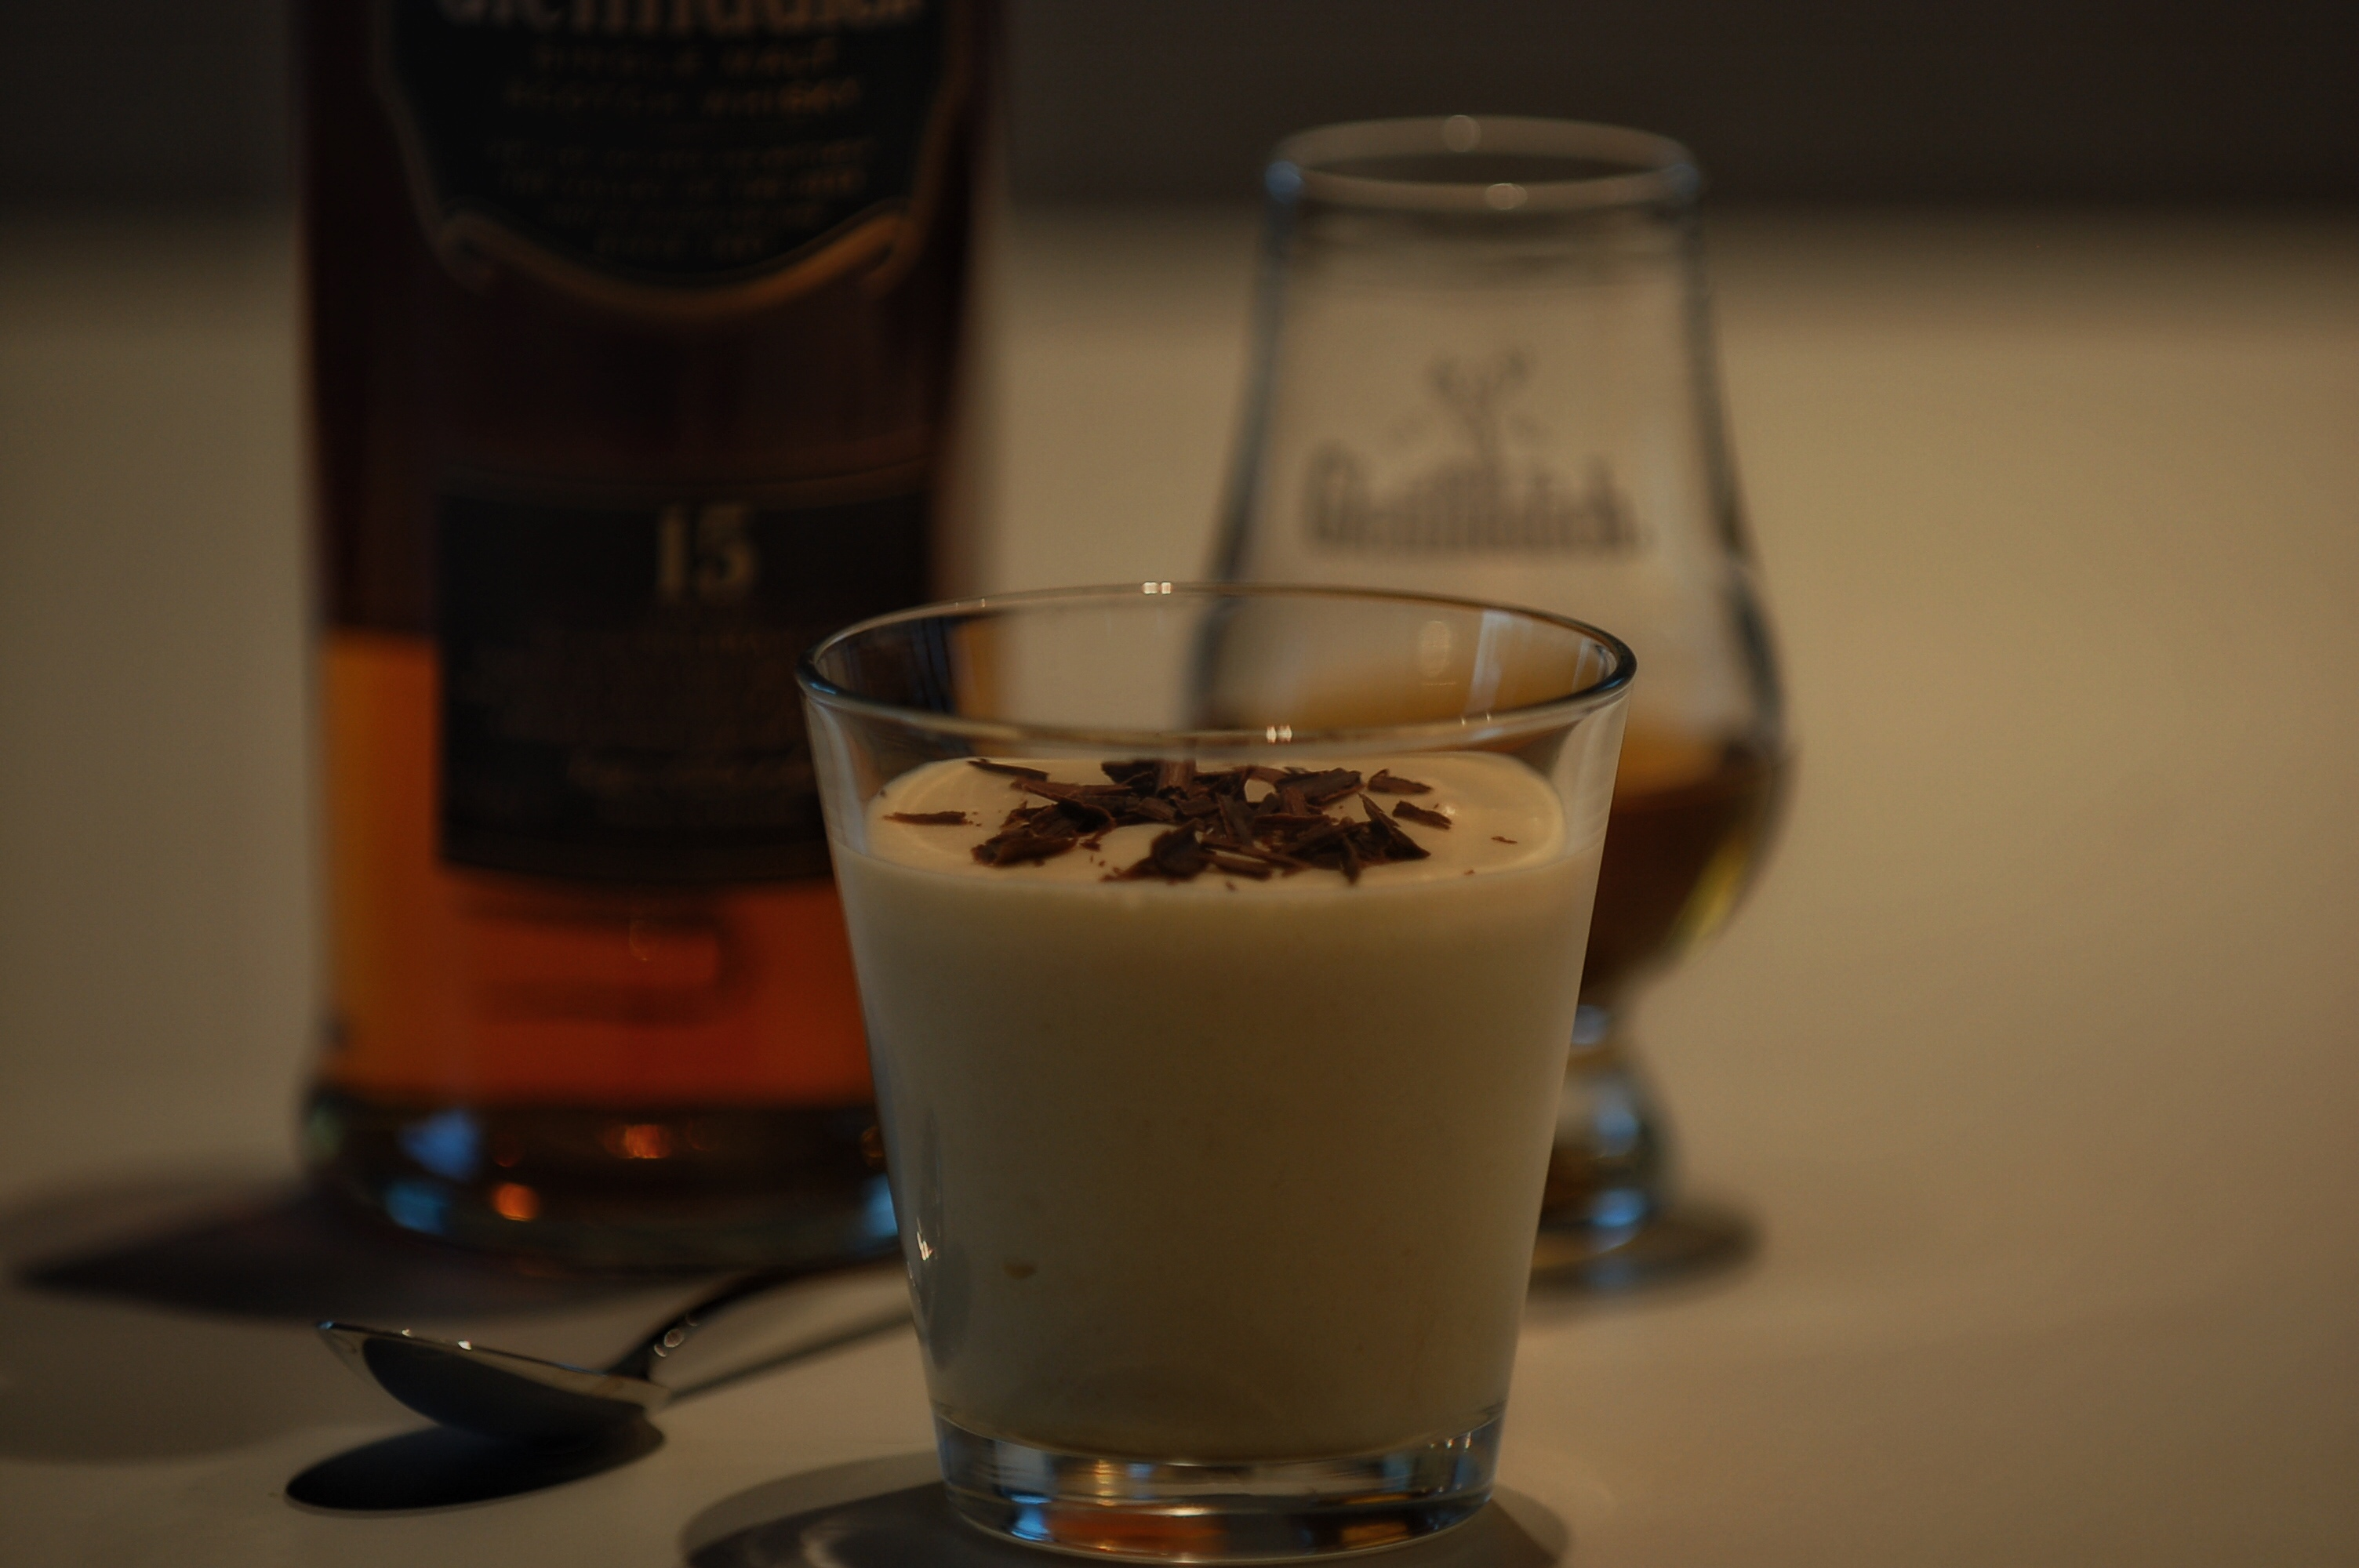 Whisky mousse